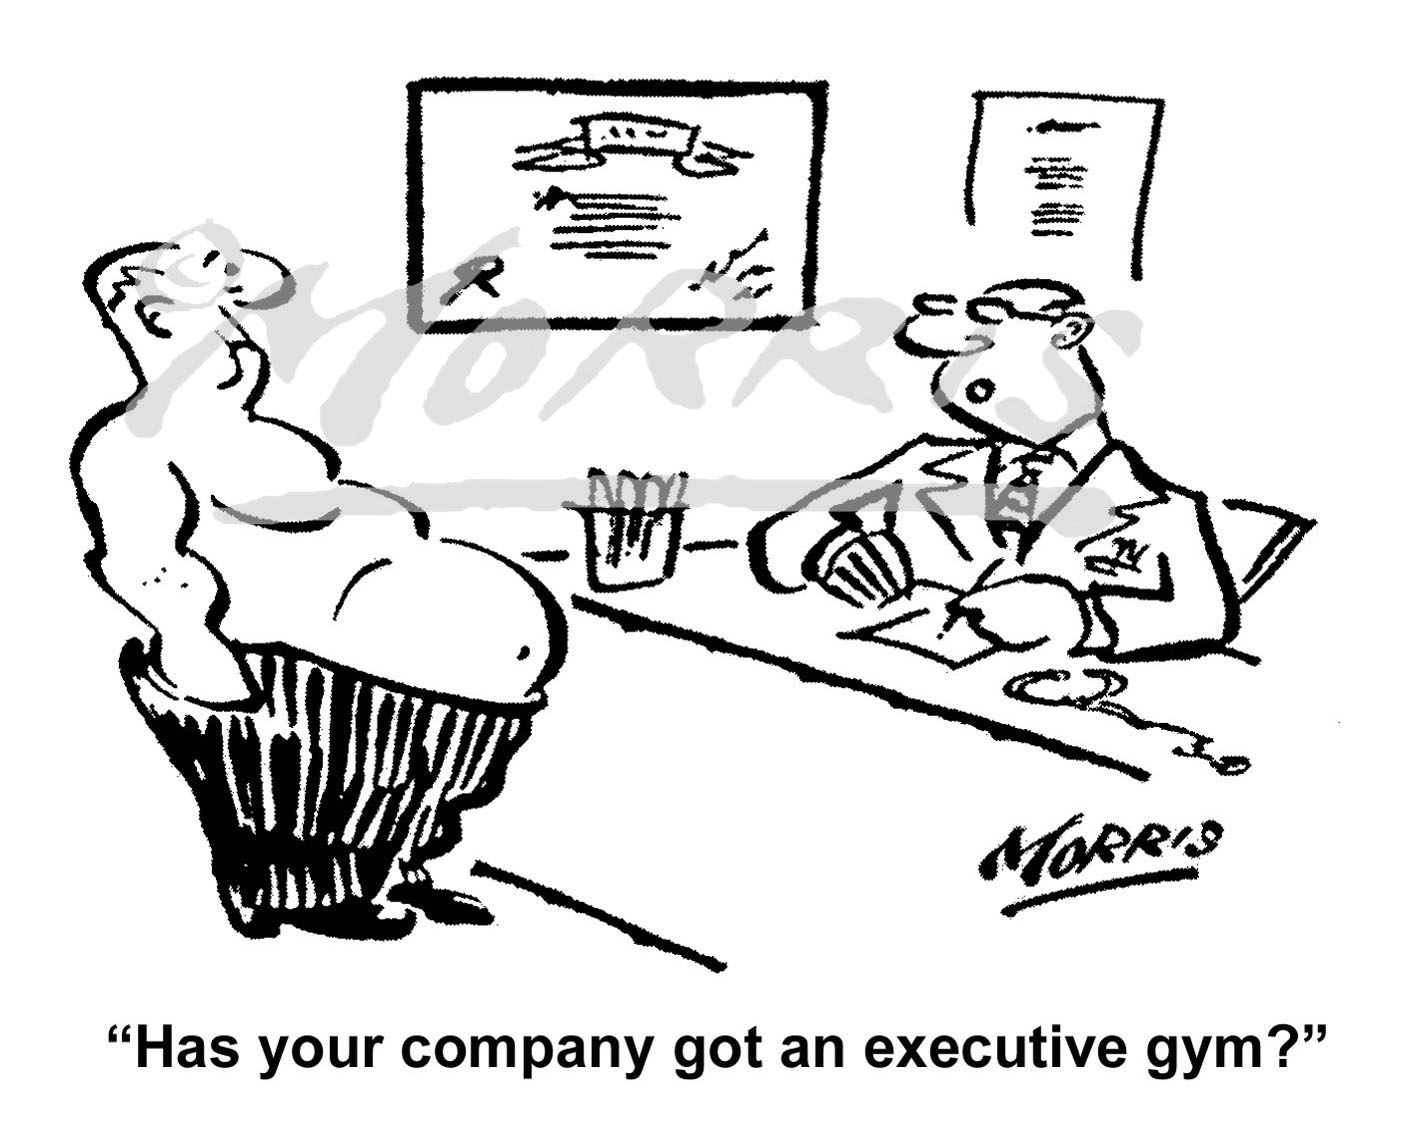 Executive gym cartoon – Ref: 7426bw